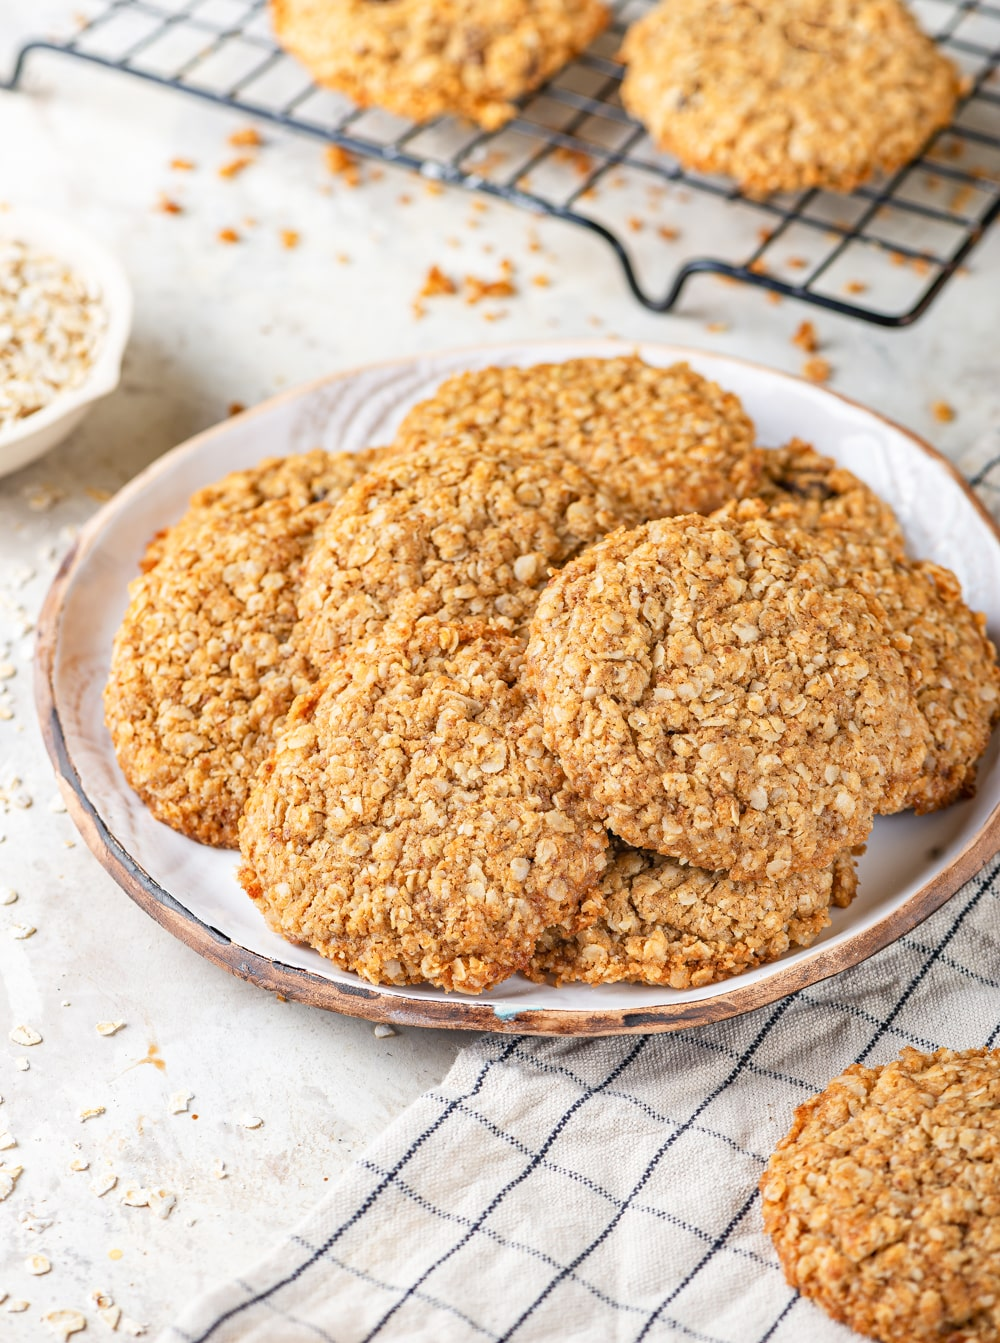 Eight vegan oatmeal cookies overlapping one another on a white plate. There are two oatmeal cookies on a black wire rack behind the plate of cookies. One oatmeal cookie is on a white and black plaid tablecloth in front of the plate of cookies. Everything is on a white counter.